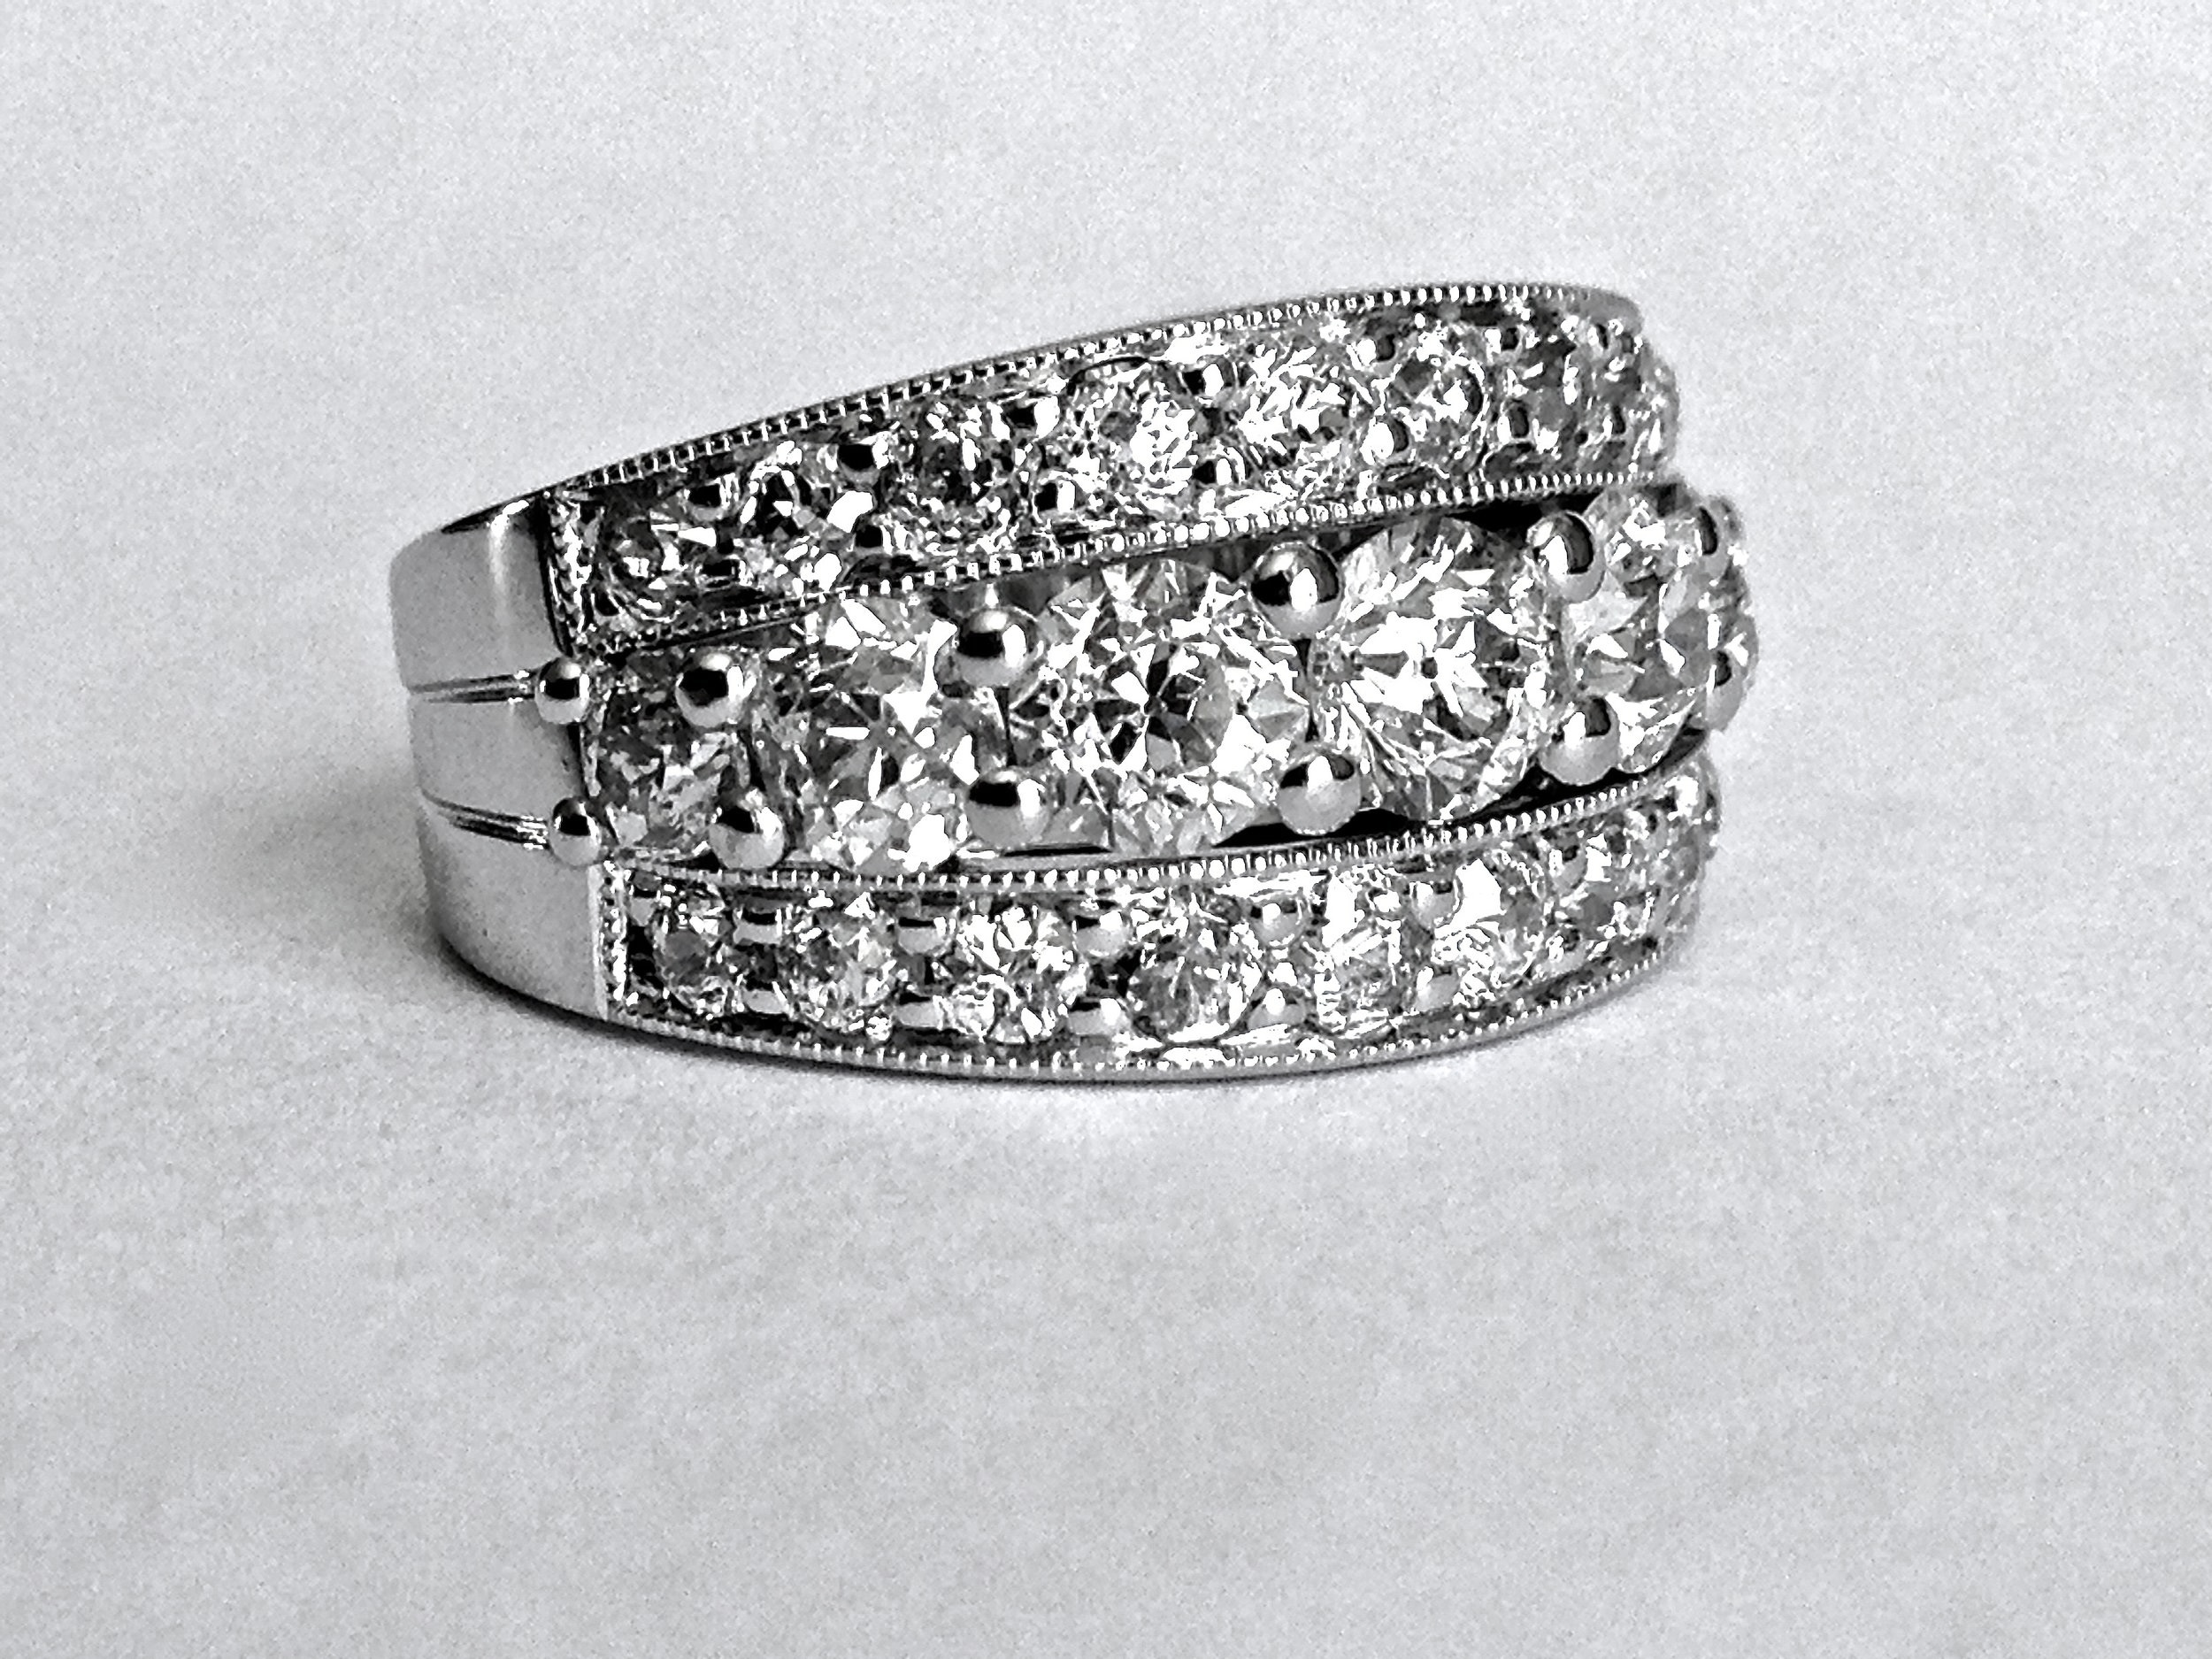 Copy of Platinum mounted 3 row diamond band. Made in Chichester, England.